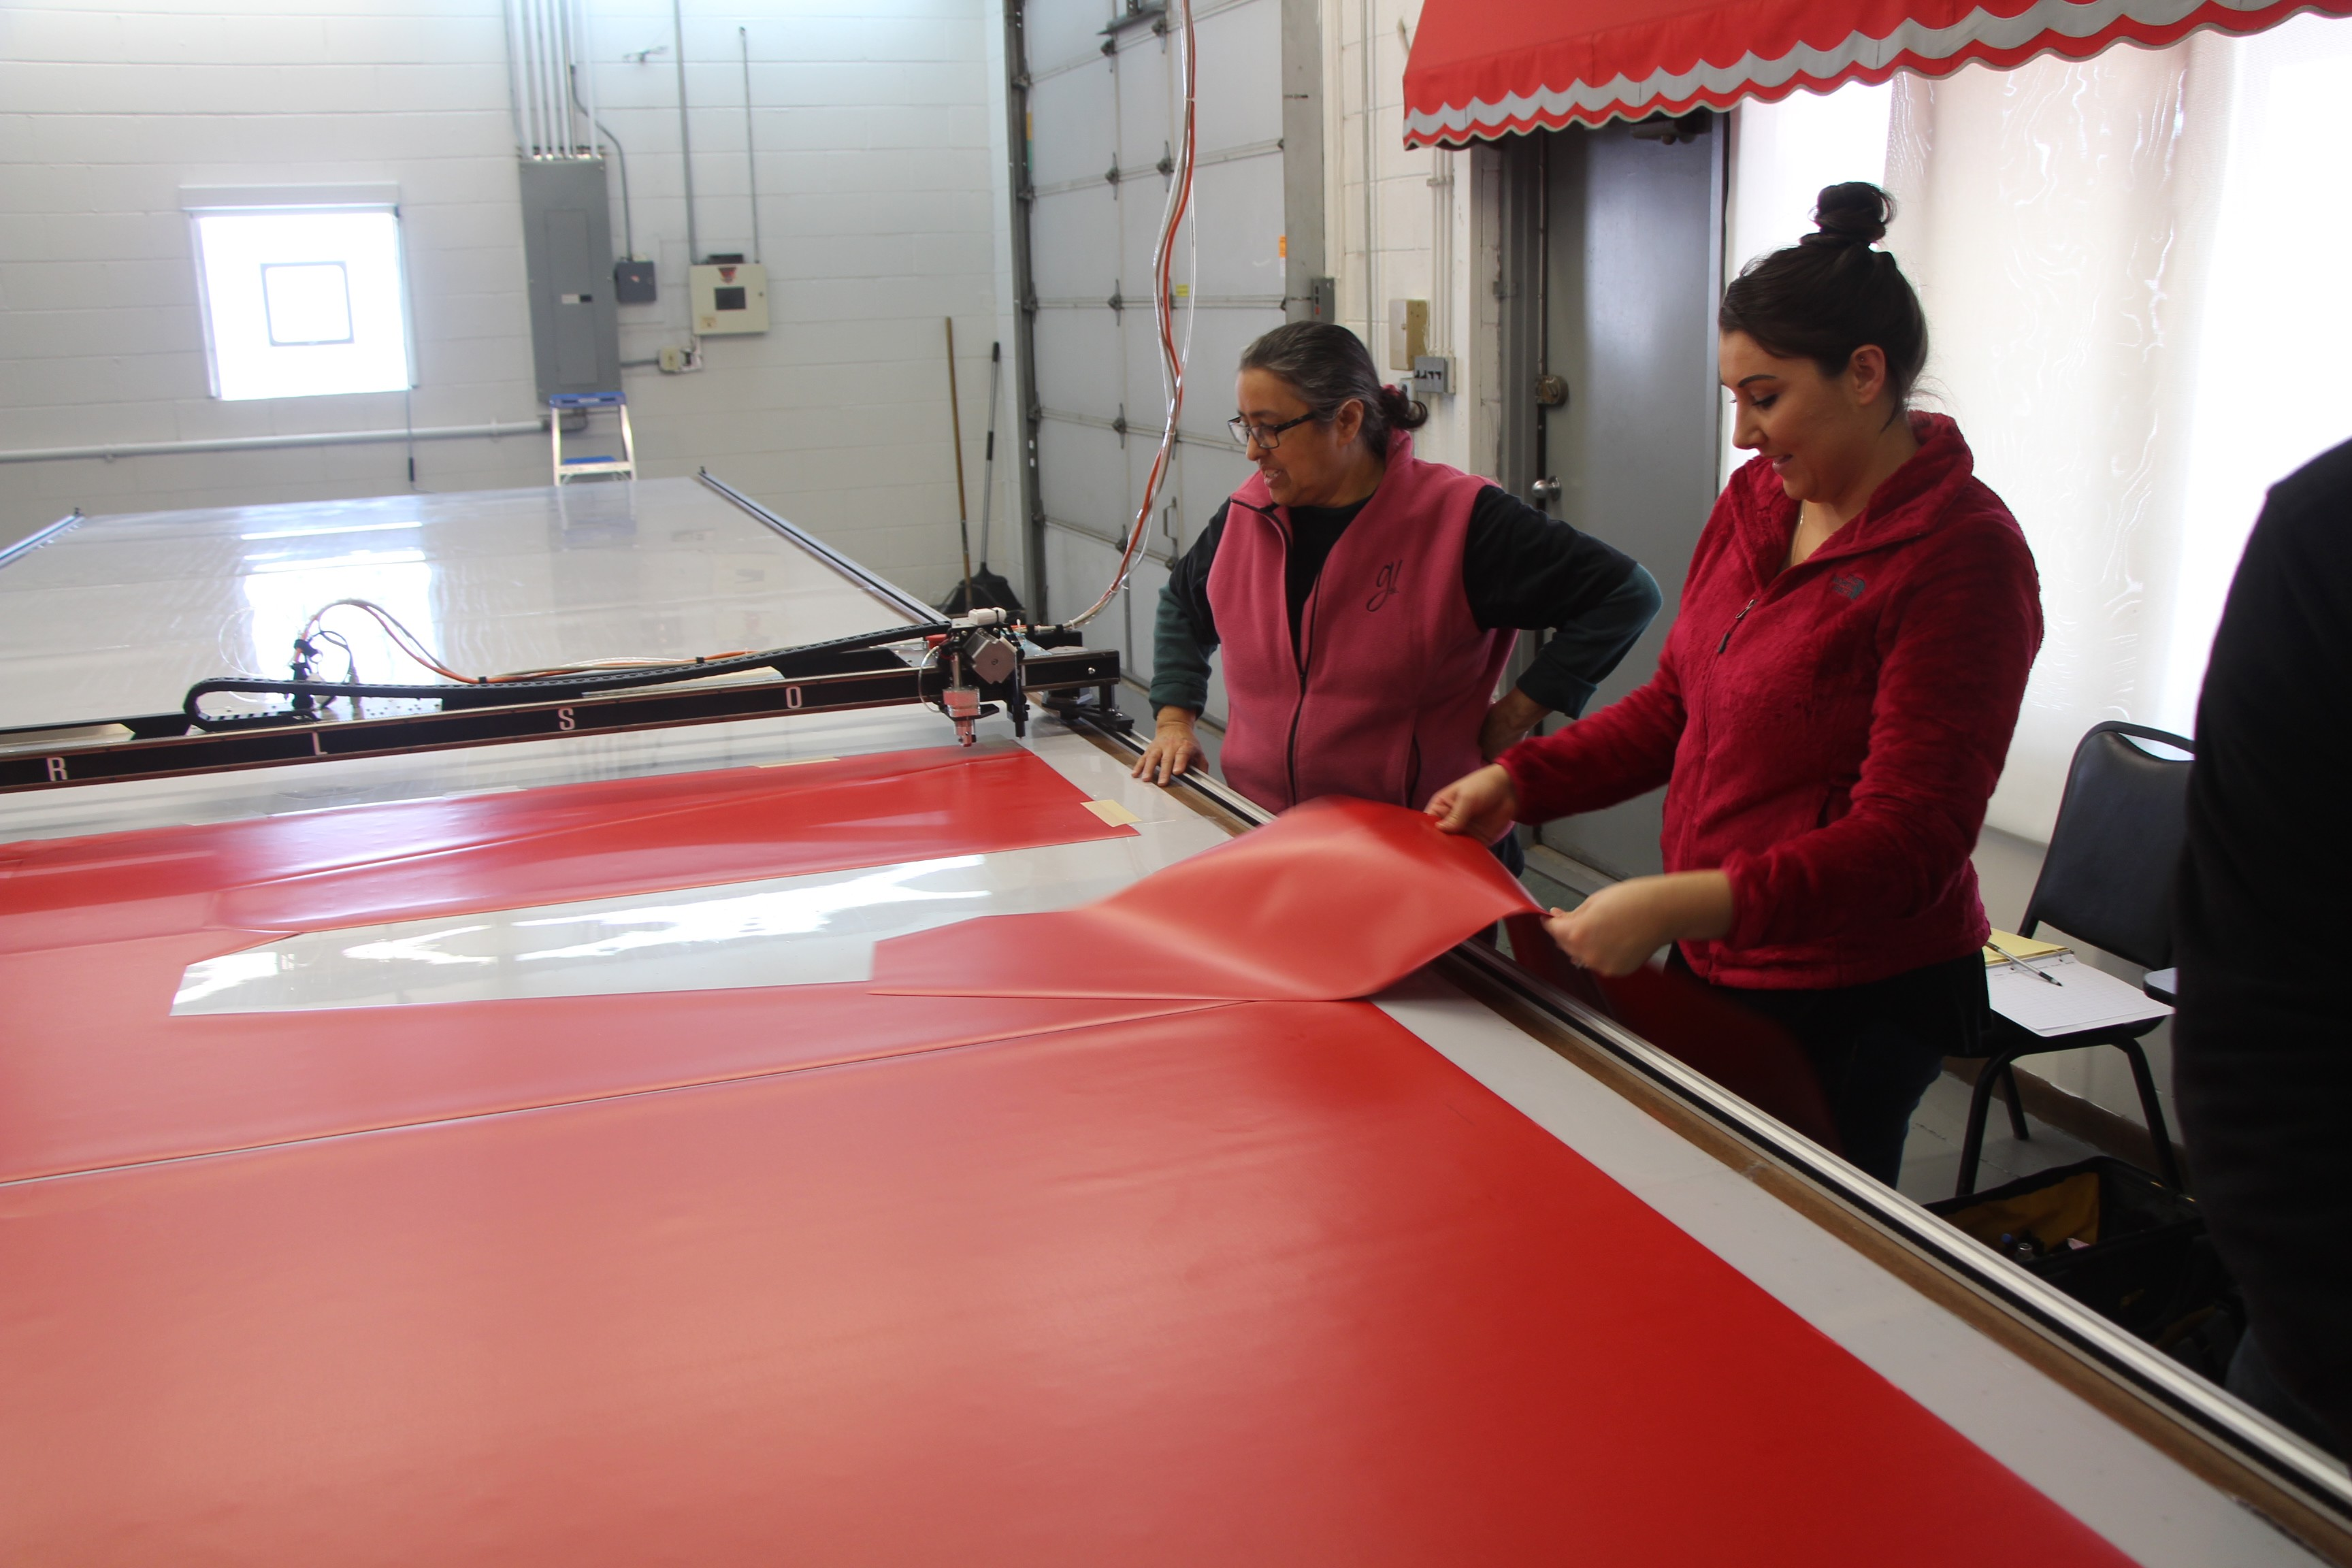 Inspecting the first cut. This is one wing of the awning.